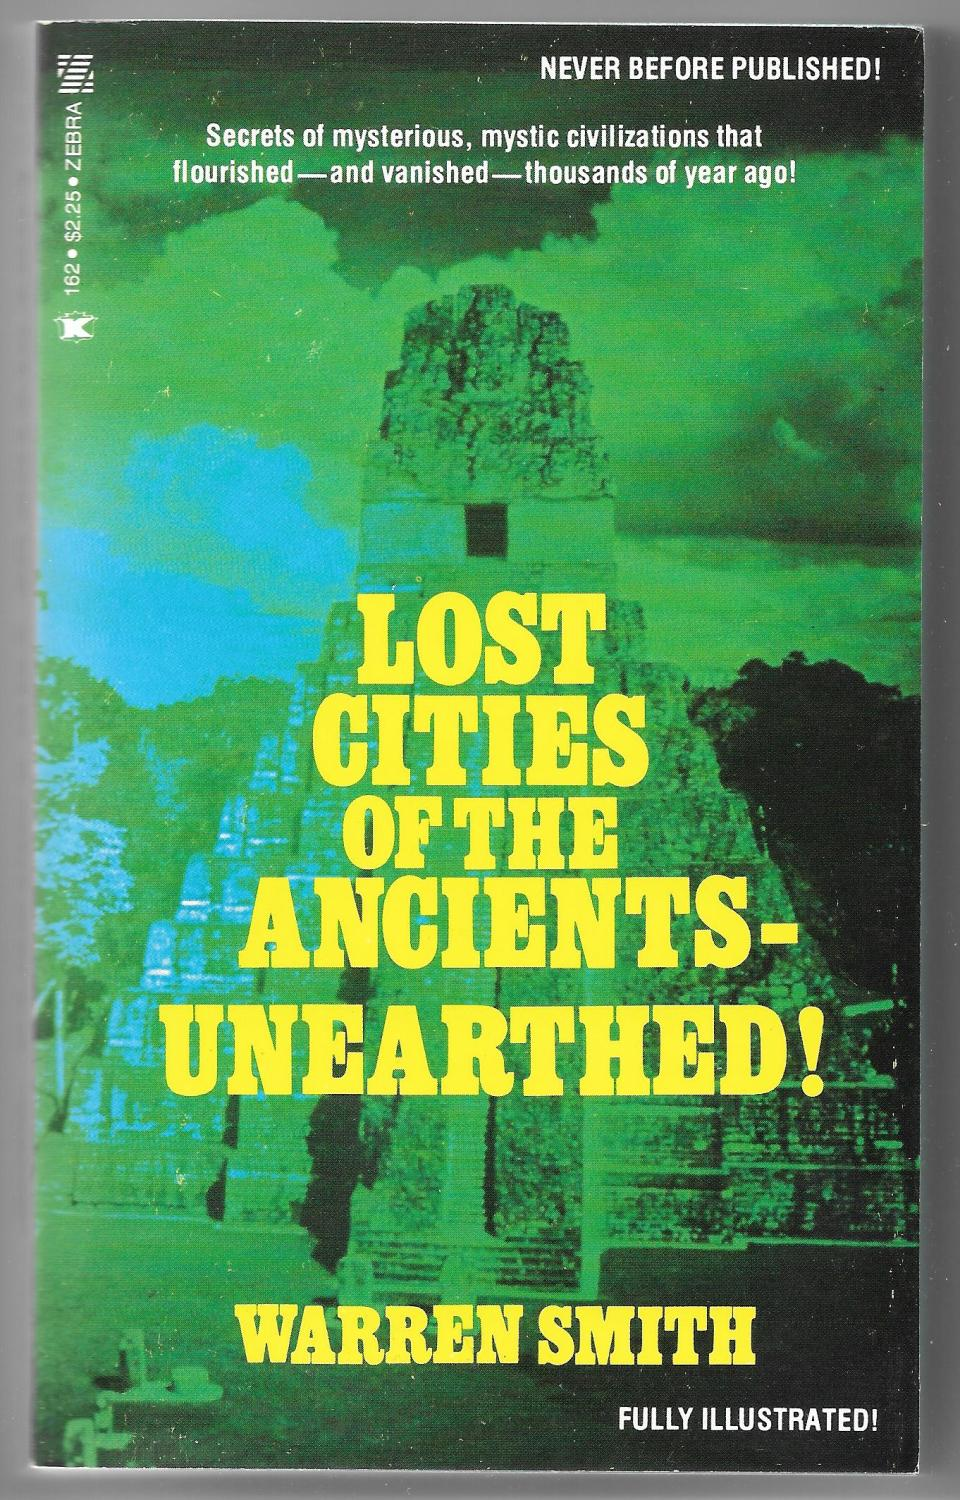 Lost Cities of the Ancients - Unearthed!